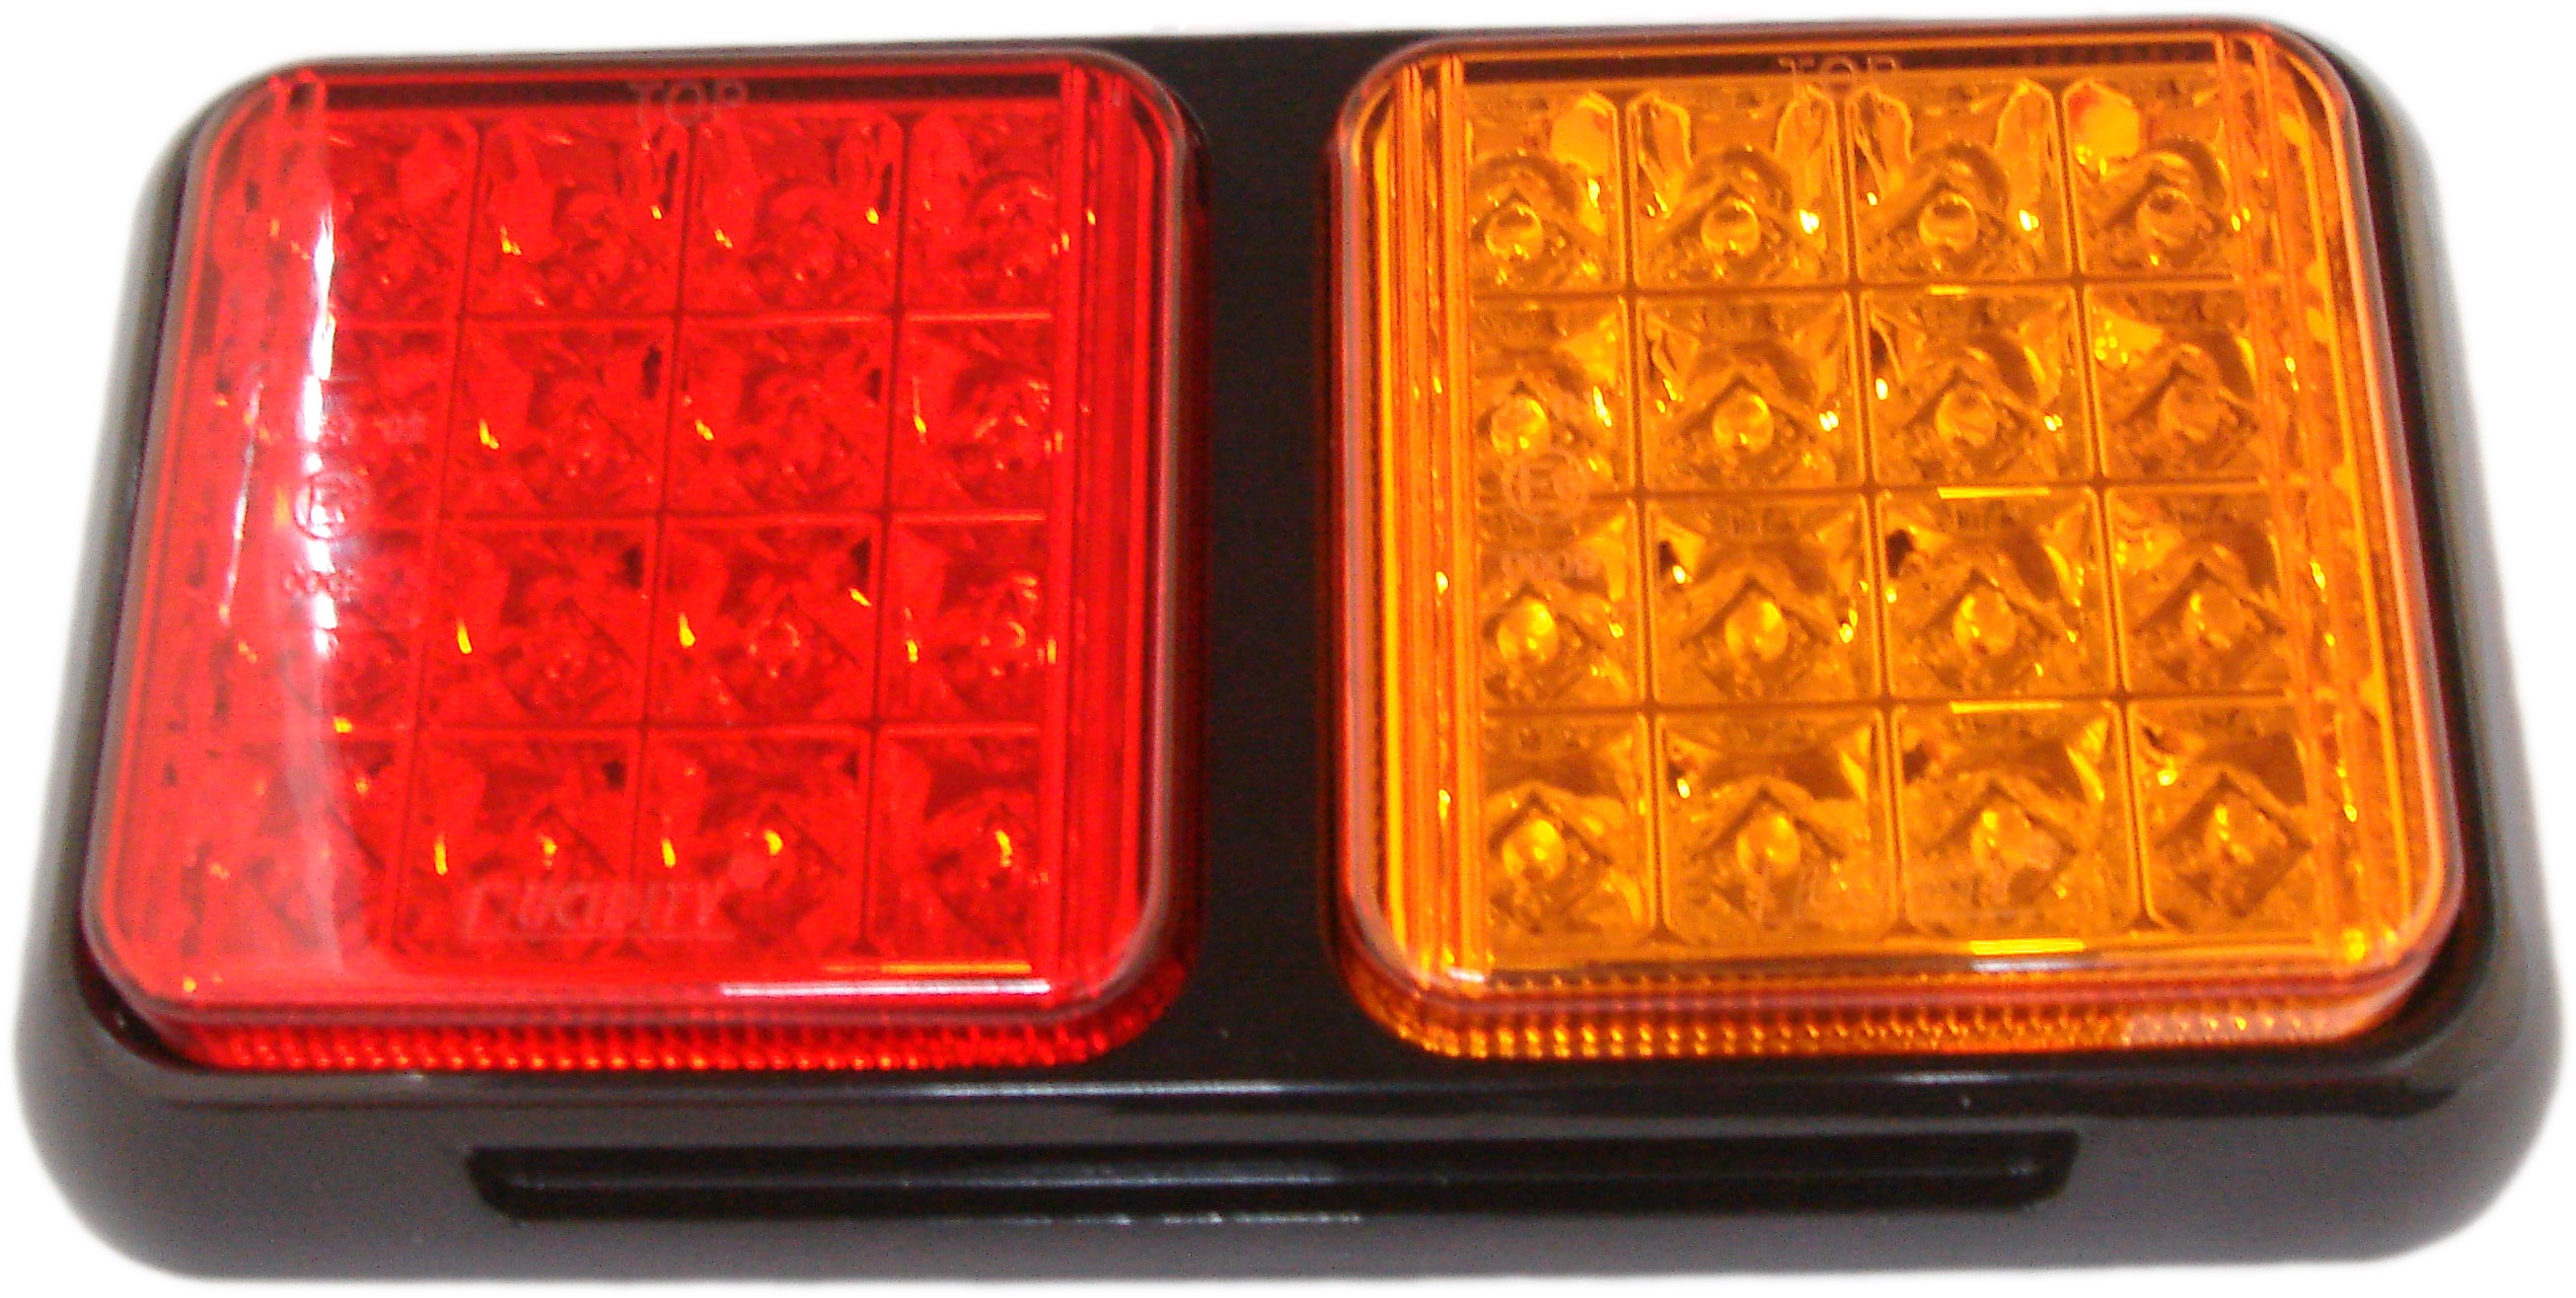 LAP 26001 Series rear lamps